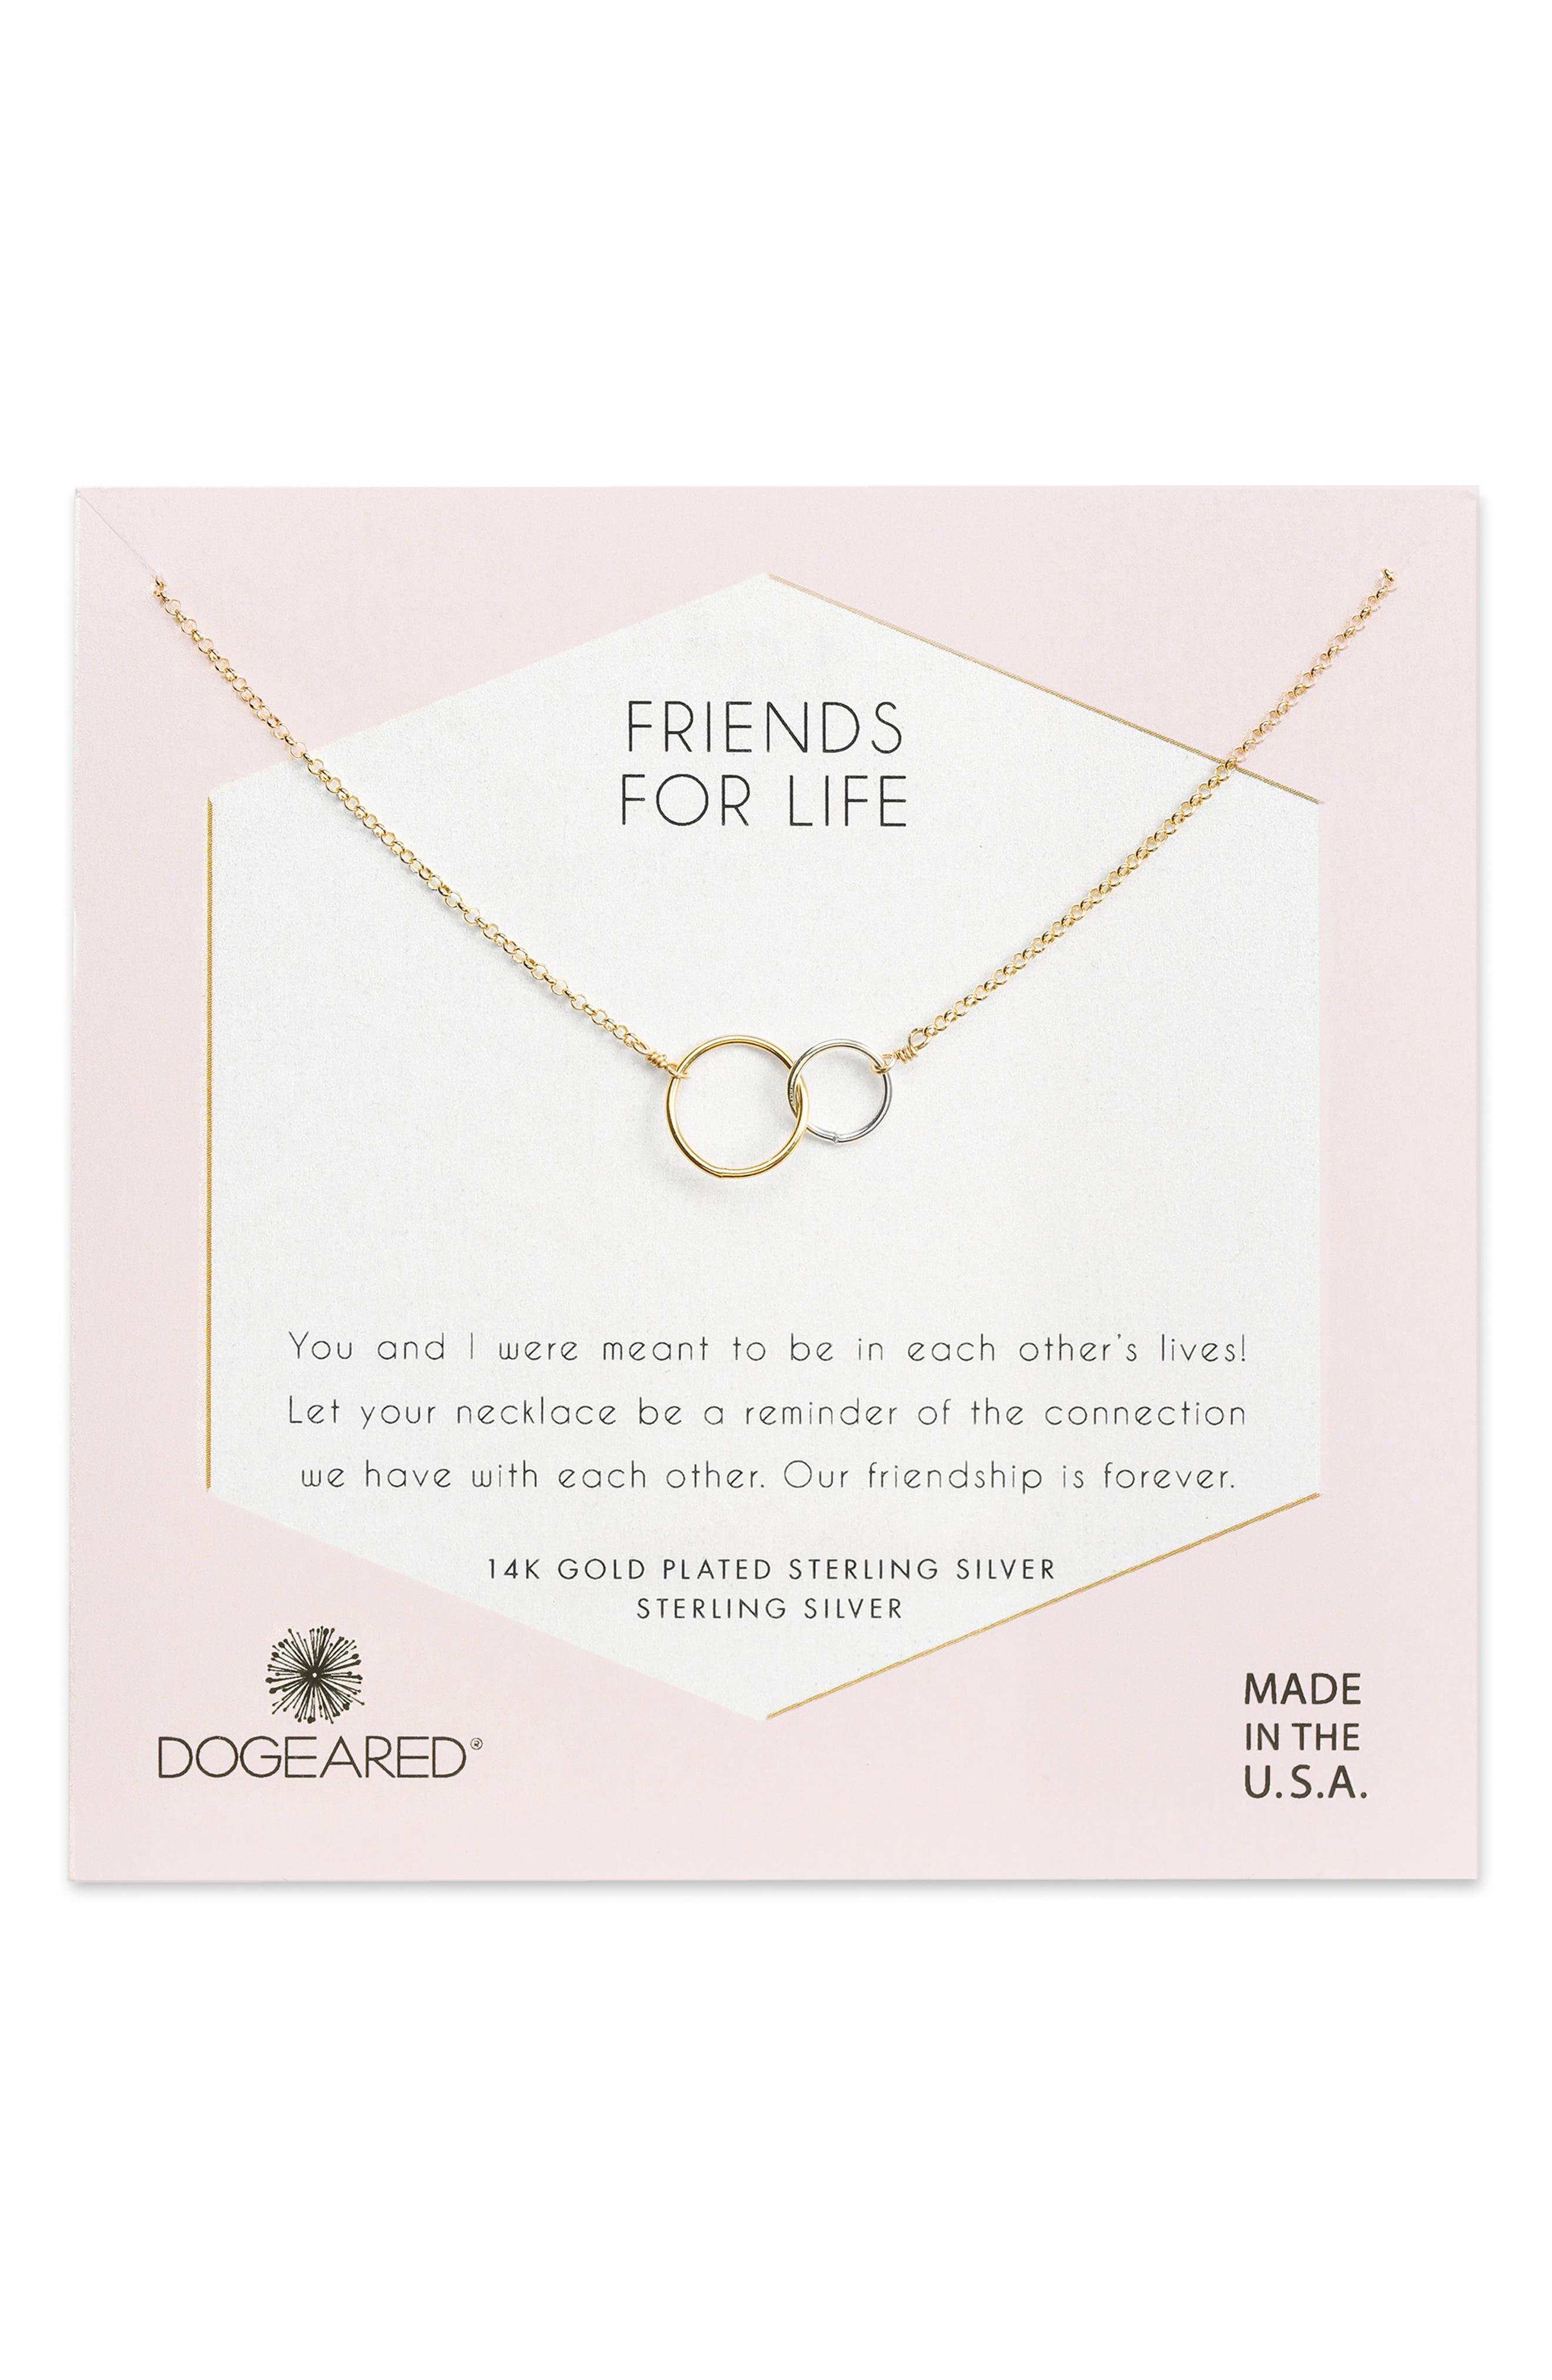 Friends for Life Necklace,                             Main thumbnail 1, color,                             GOLD